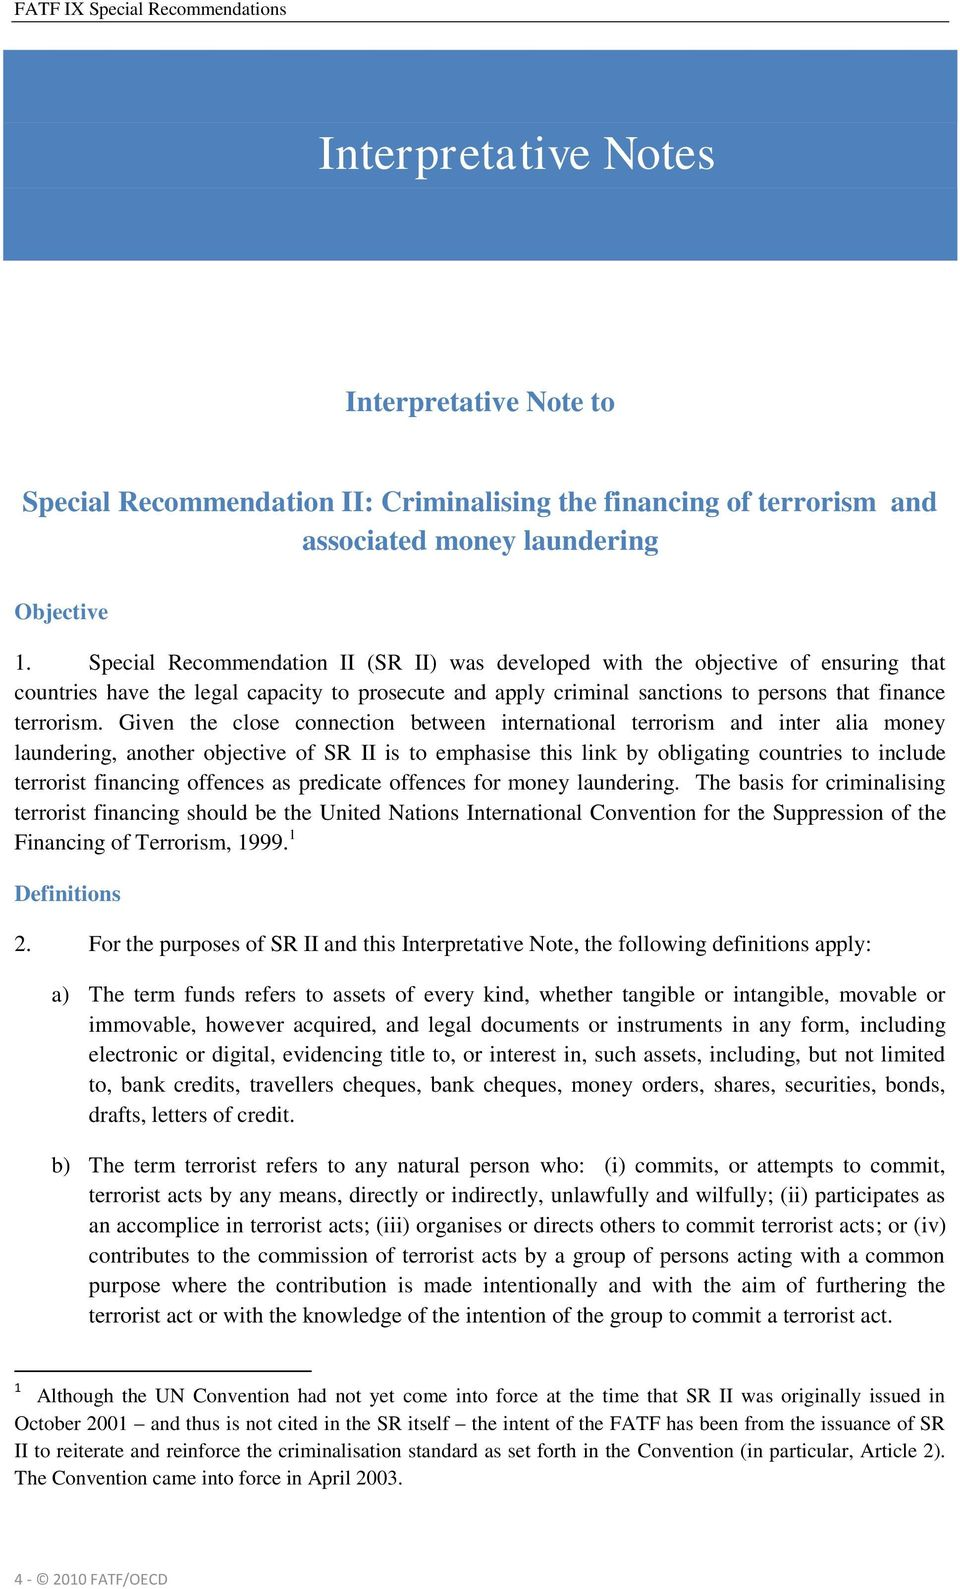 Given the close connection between international terrorism and inter alia money laundering, another objective of SR II is to emphasise this link by obligating countries to include terrorist financing